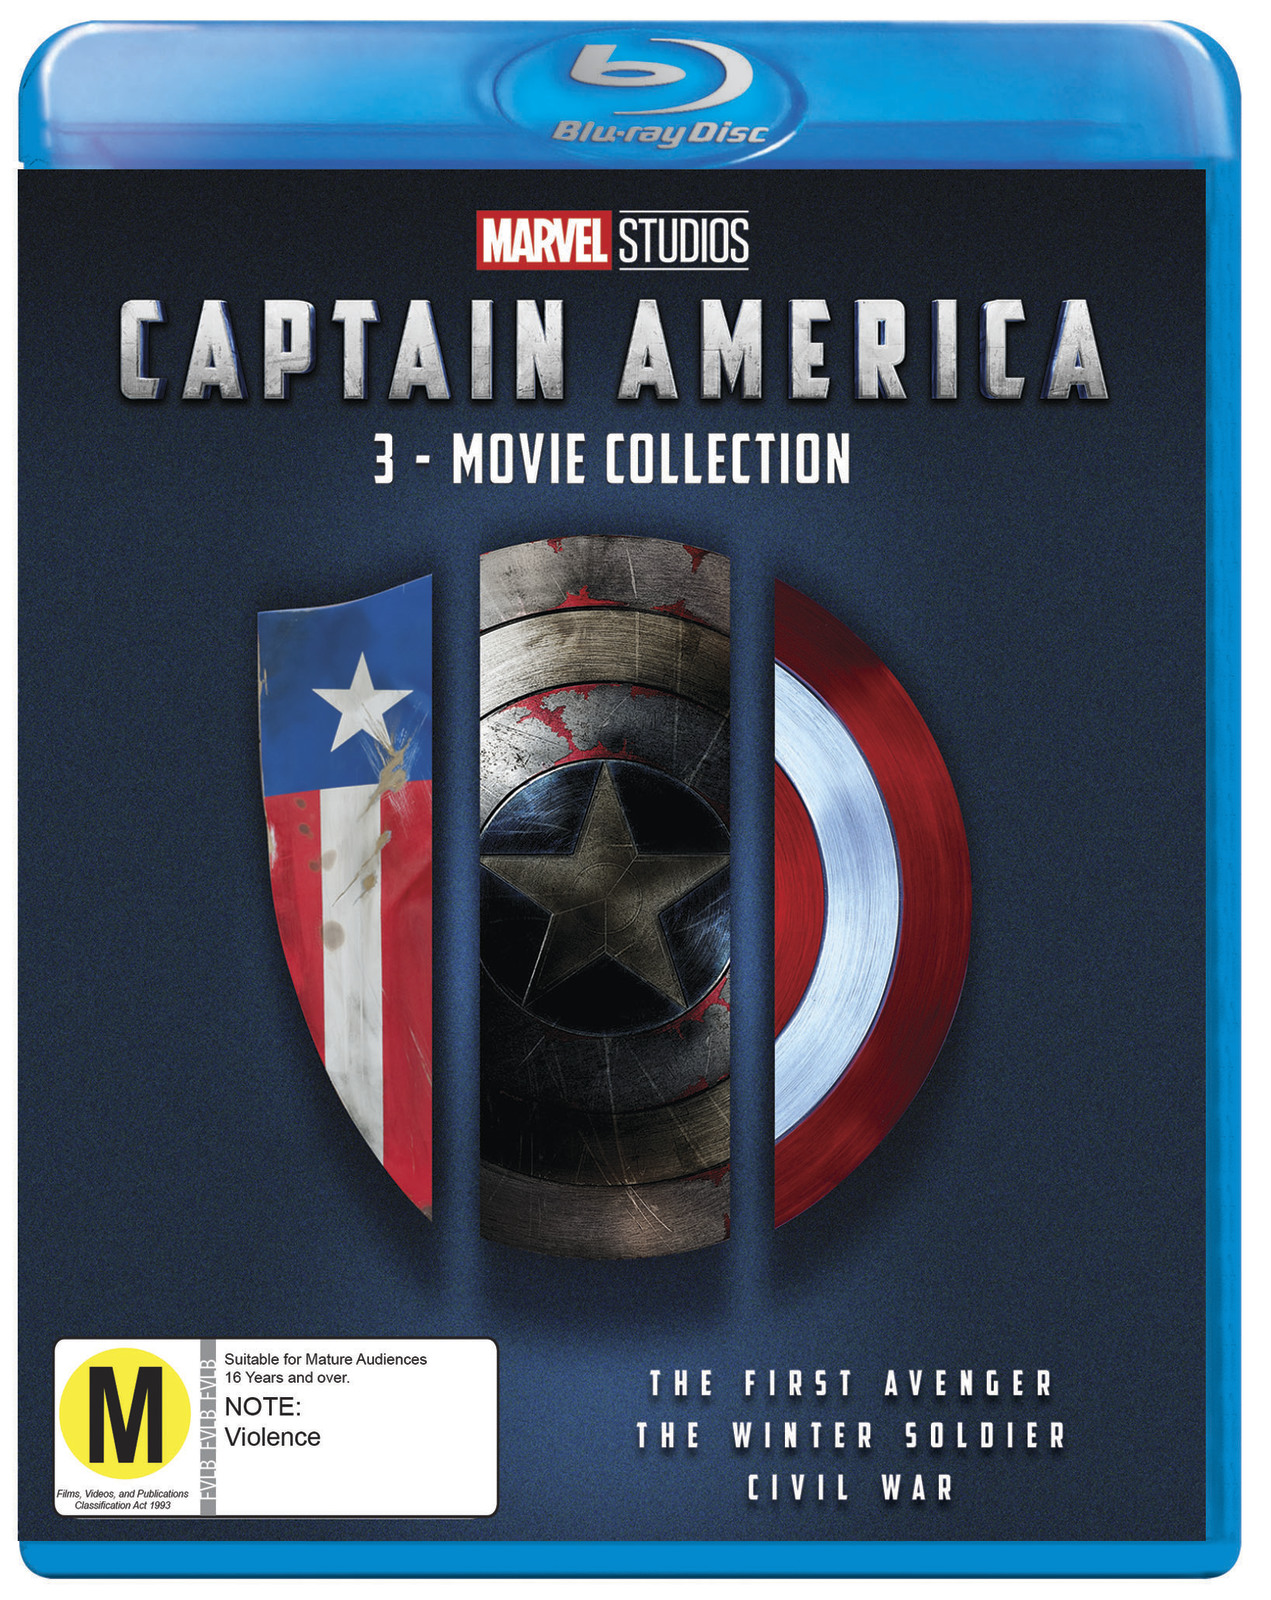 Captain America: 3 Movie Collection on Blu-ray image